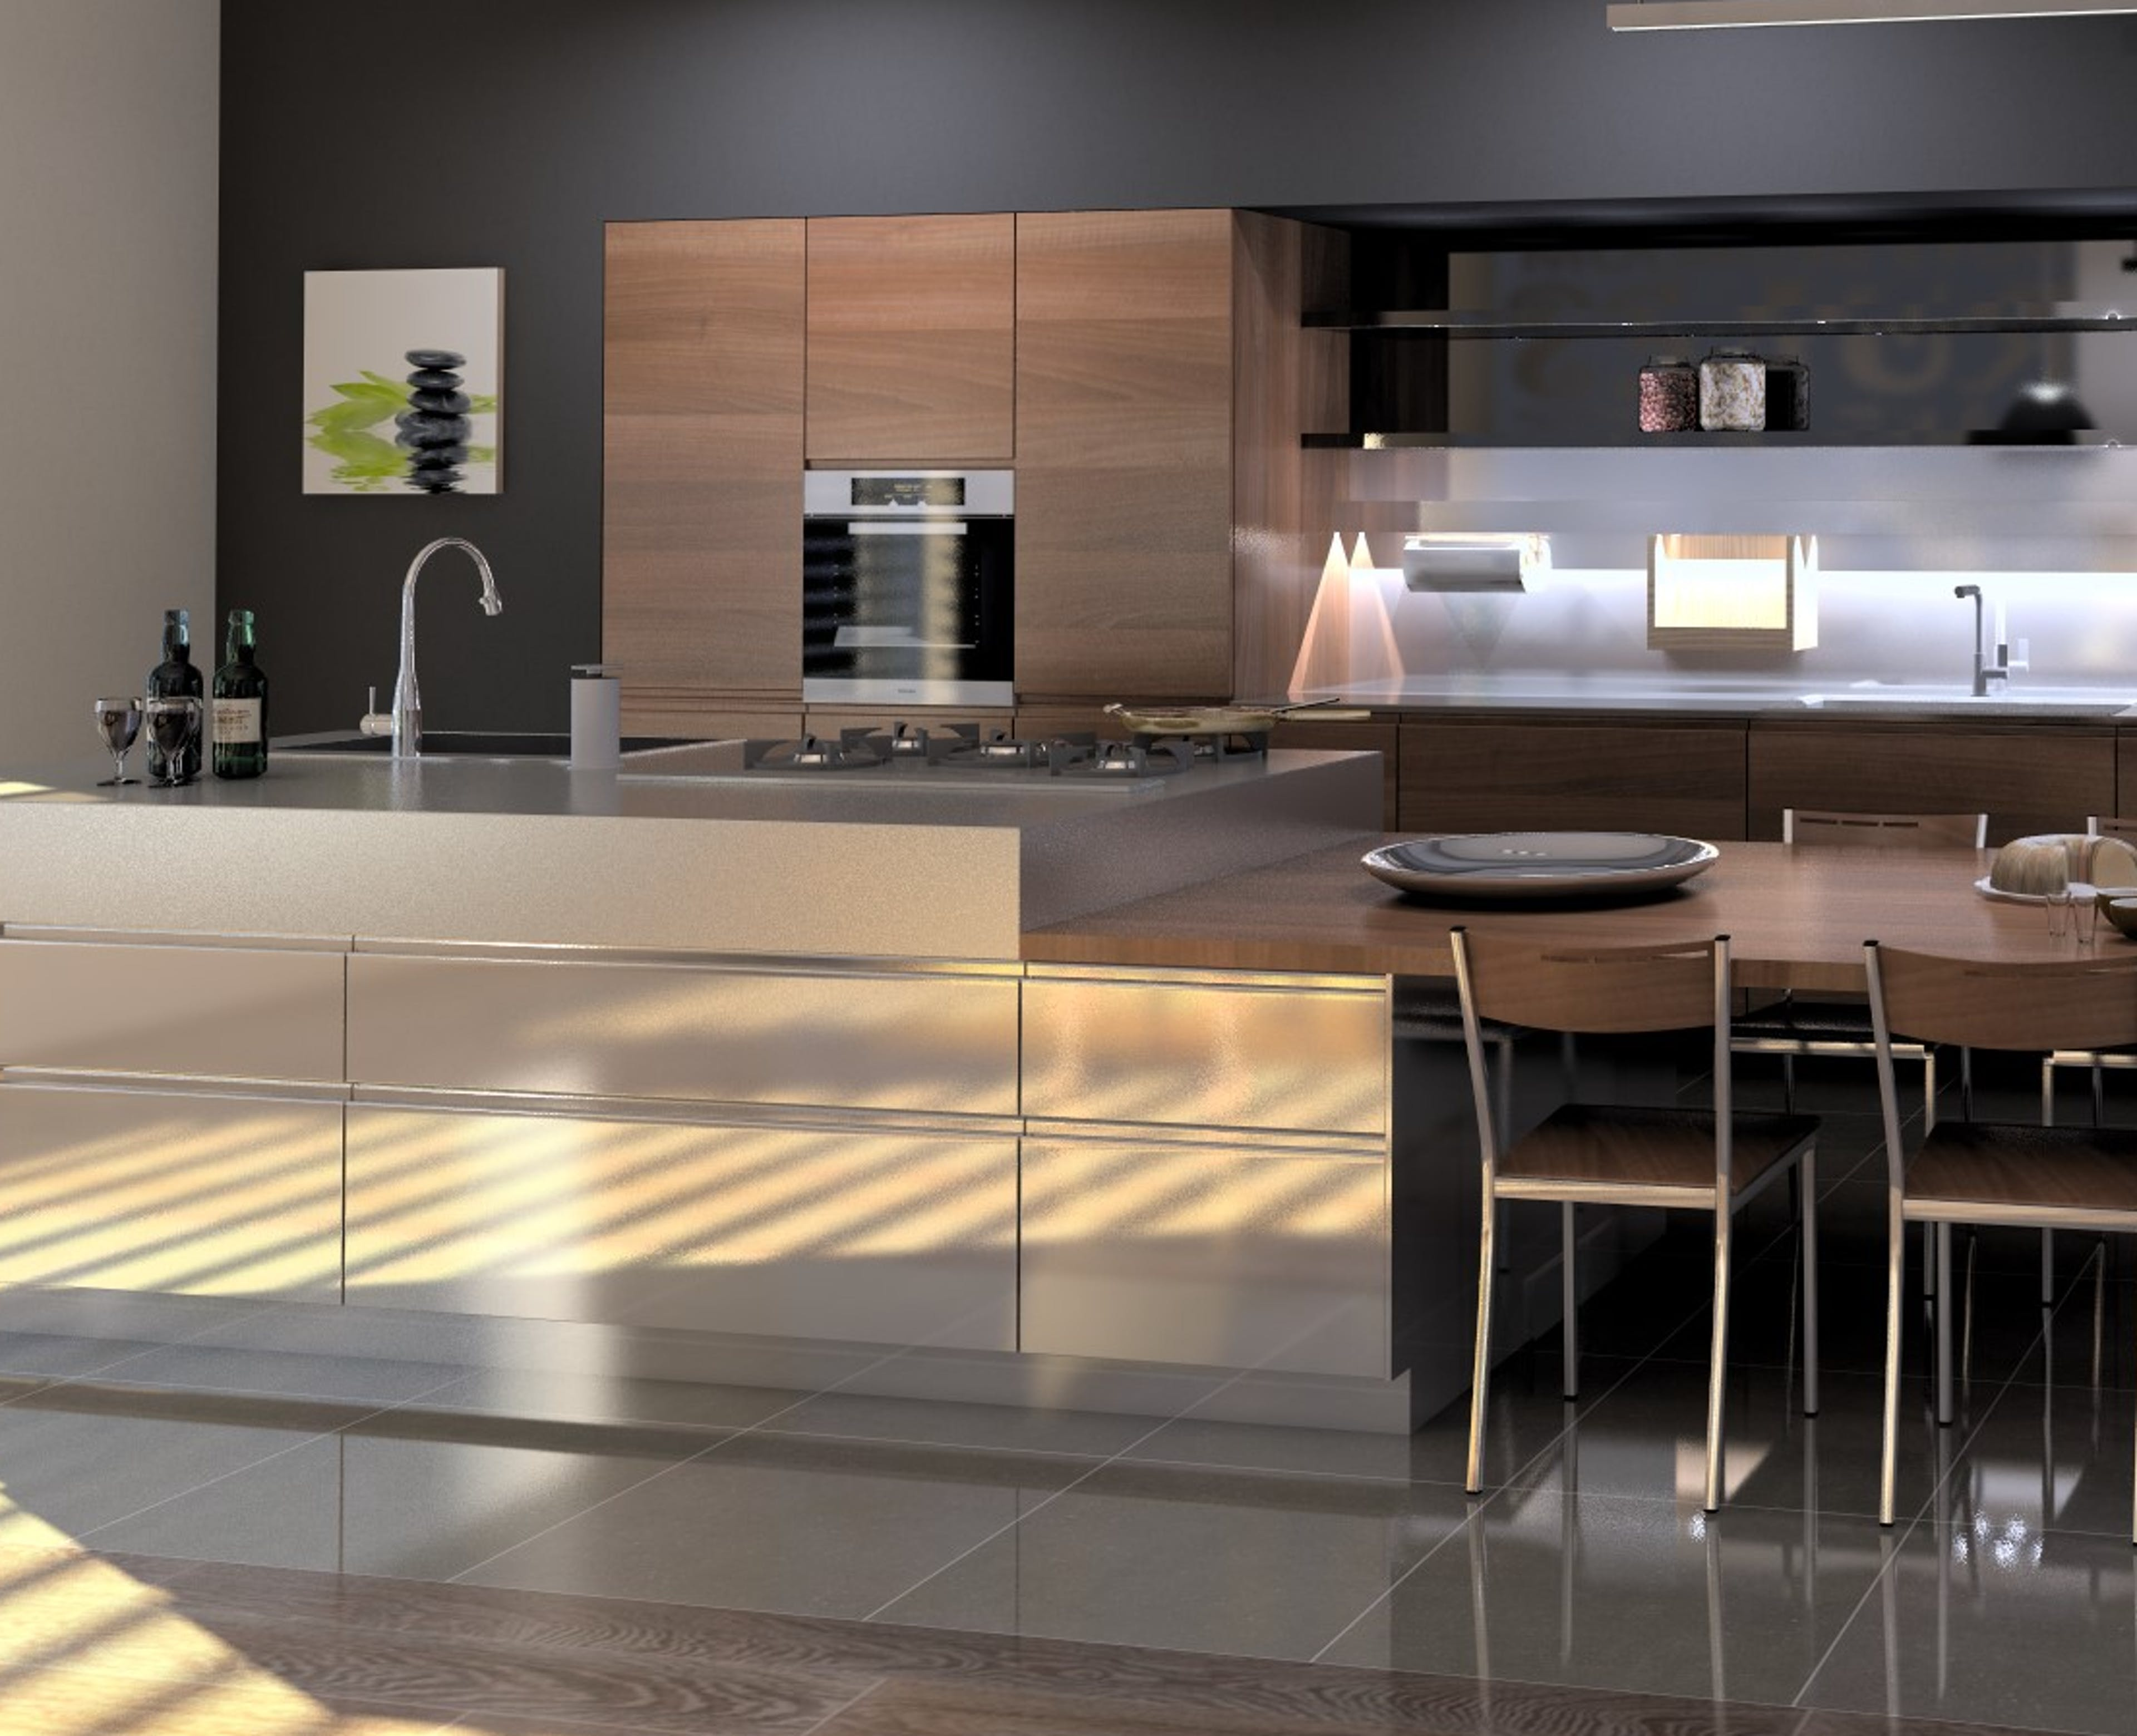 3D Render of a bold and modern kitchen with medium brown woodmatt joinery and a metallic island bench. Supplied by Compusoft